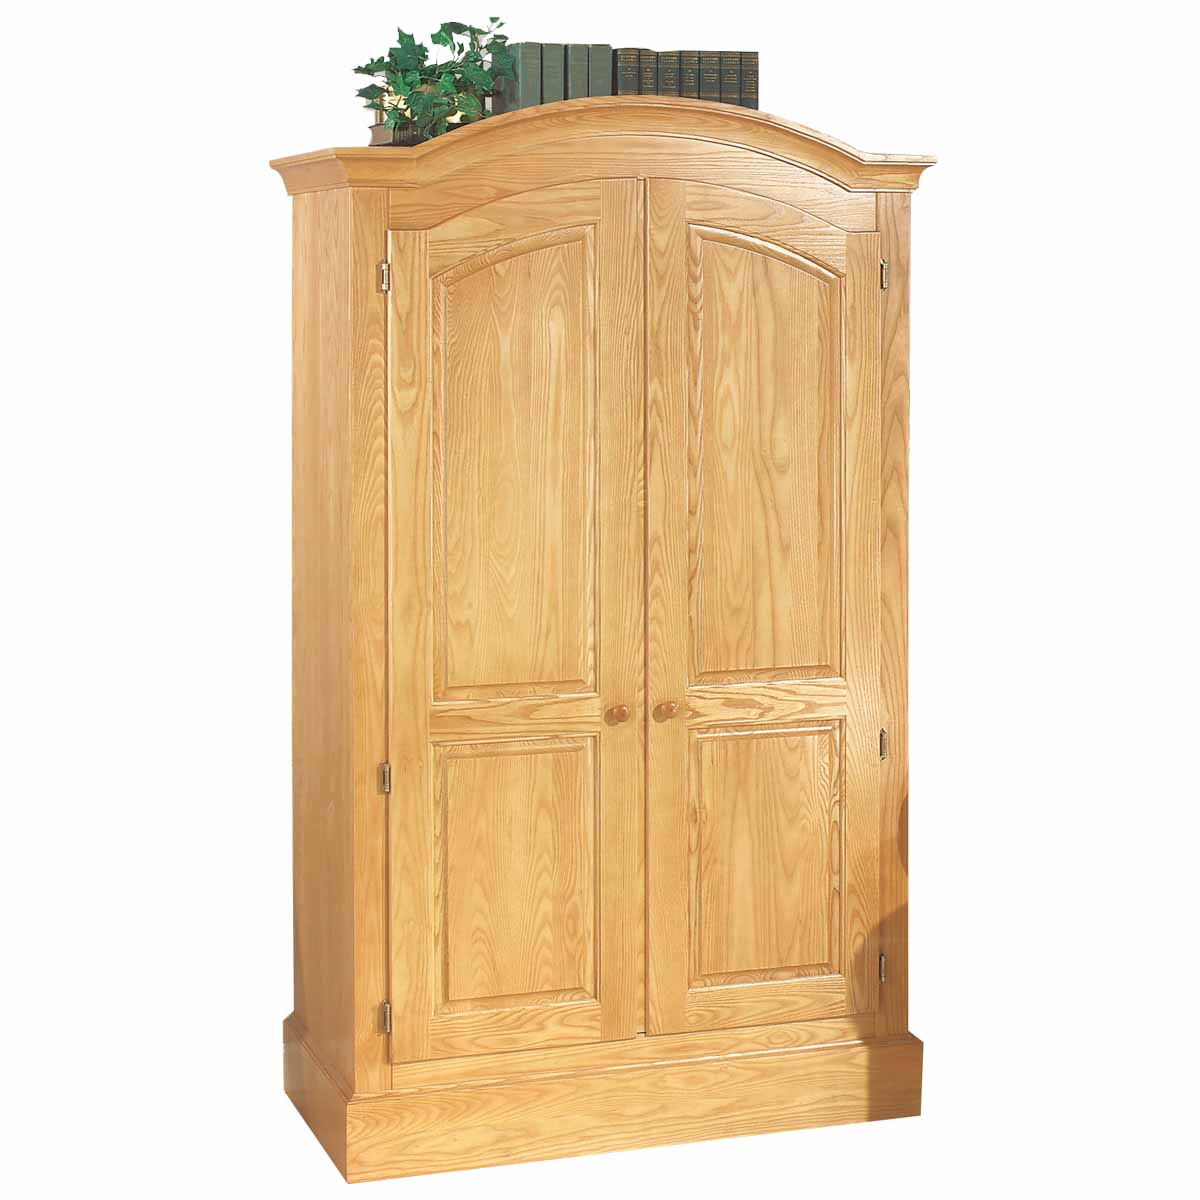 Arch Light Natural Ash Mission Style Cabinet Light Ash Stain 72 H X 4